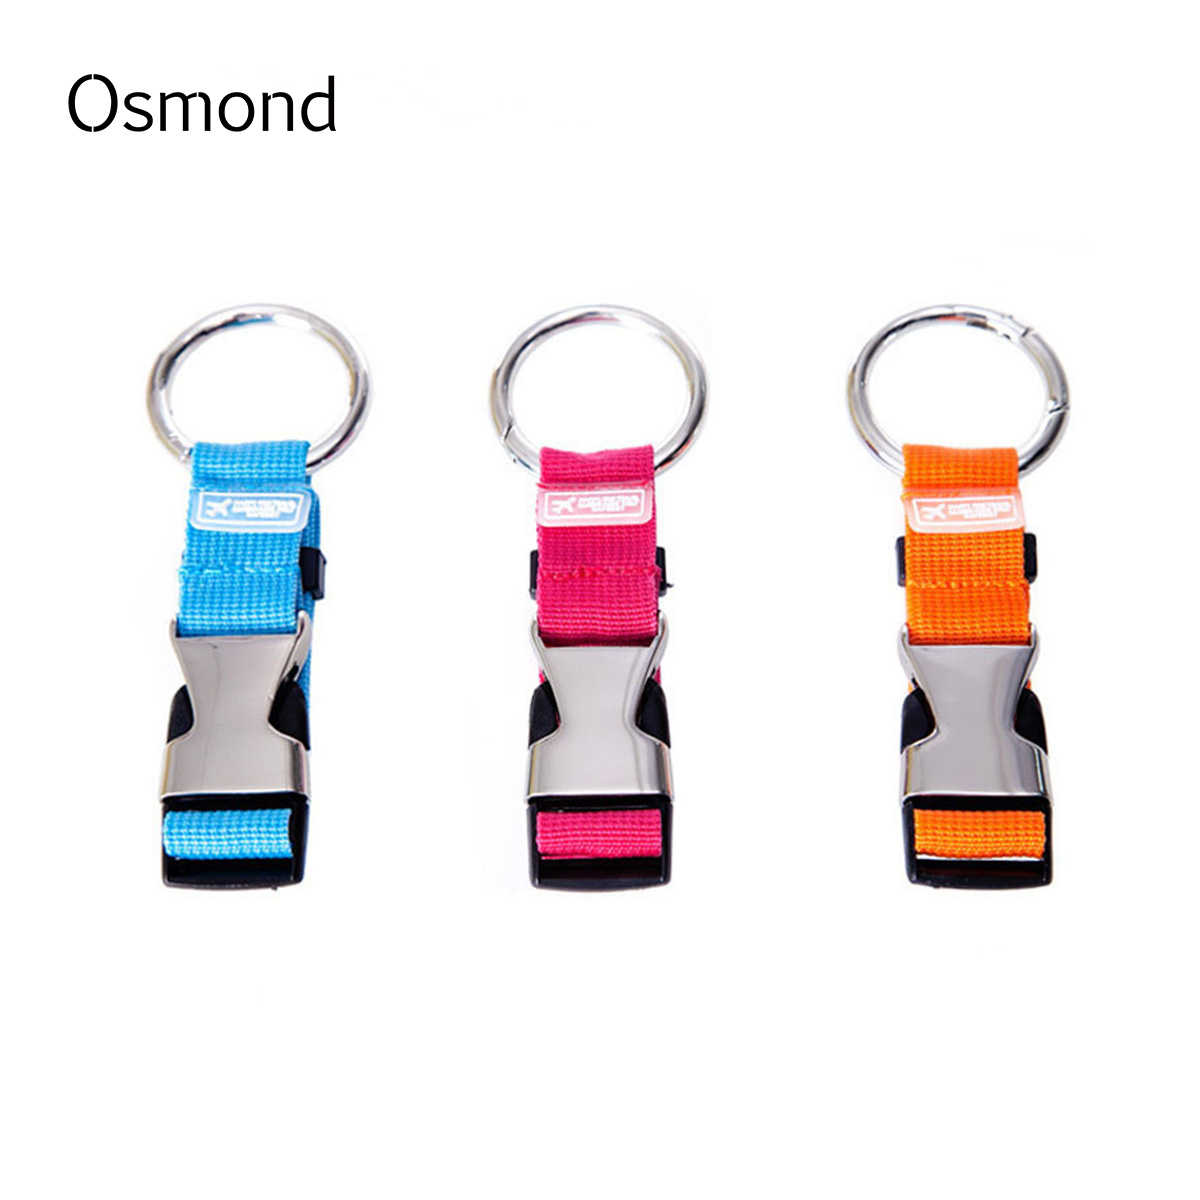 New Arrival Travel Clothing Hook Luggage Bag Hanger Convenient Hanging Strap Traveling Strap Locks Belt Secure Bag Accessories(China (Mainland))